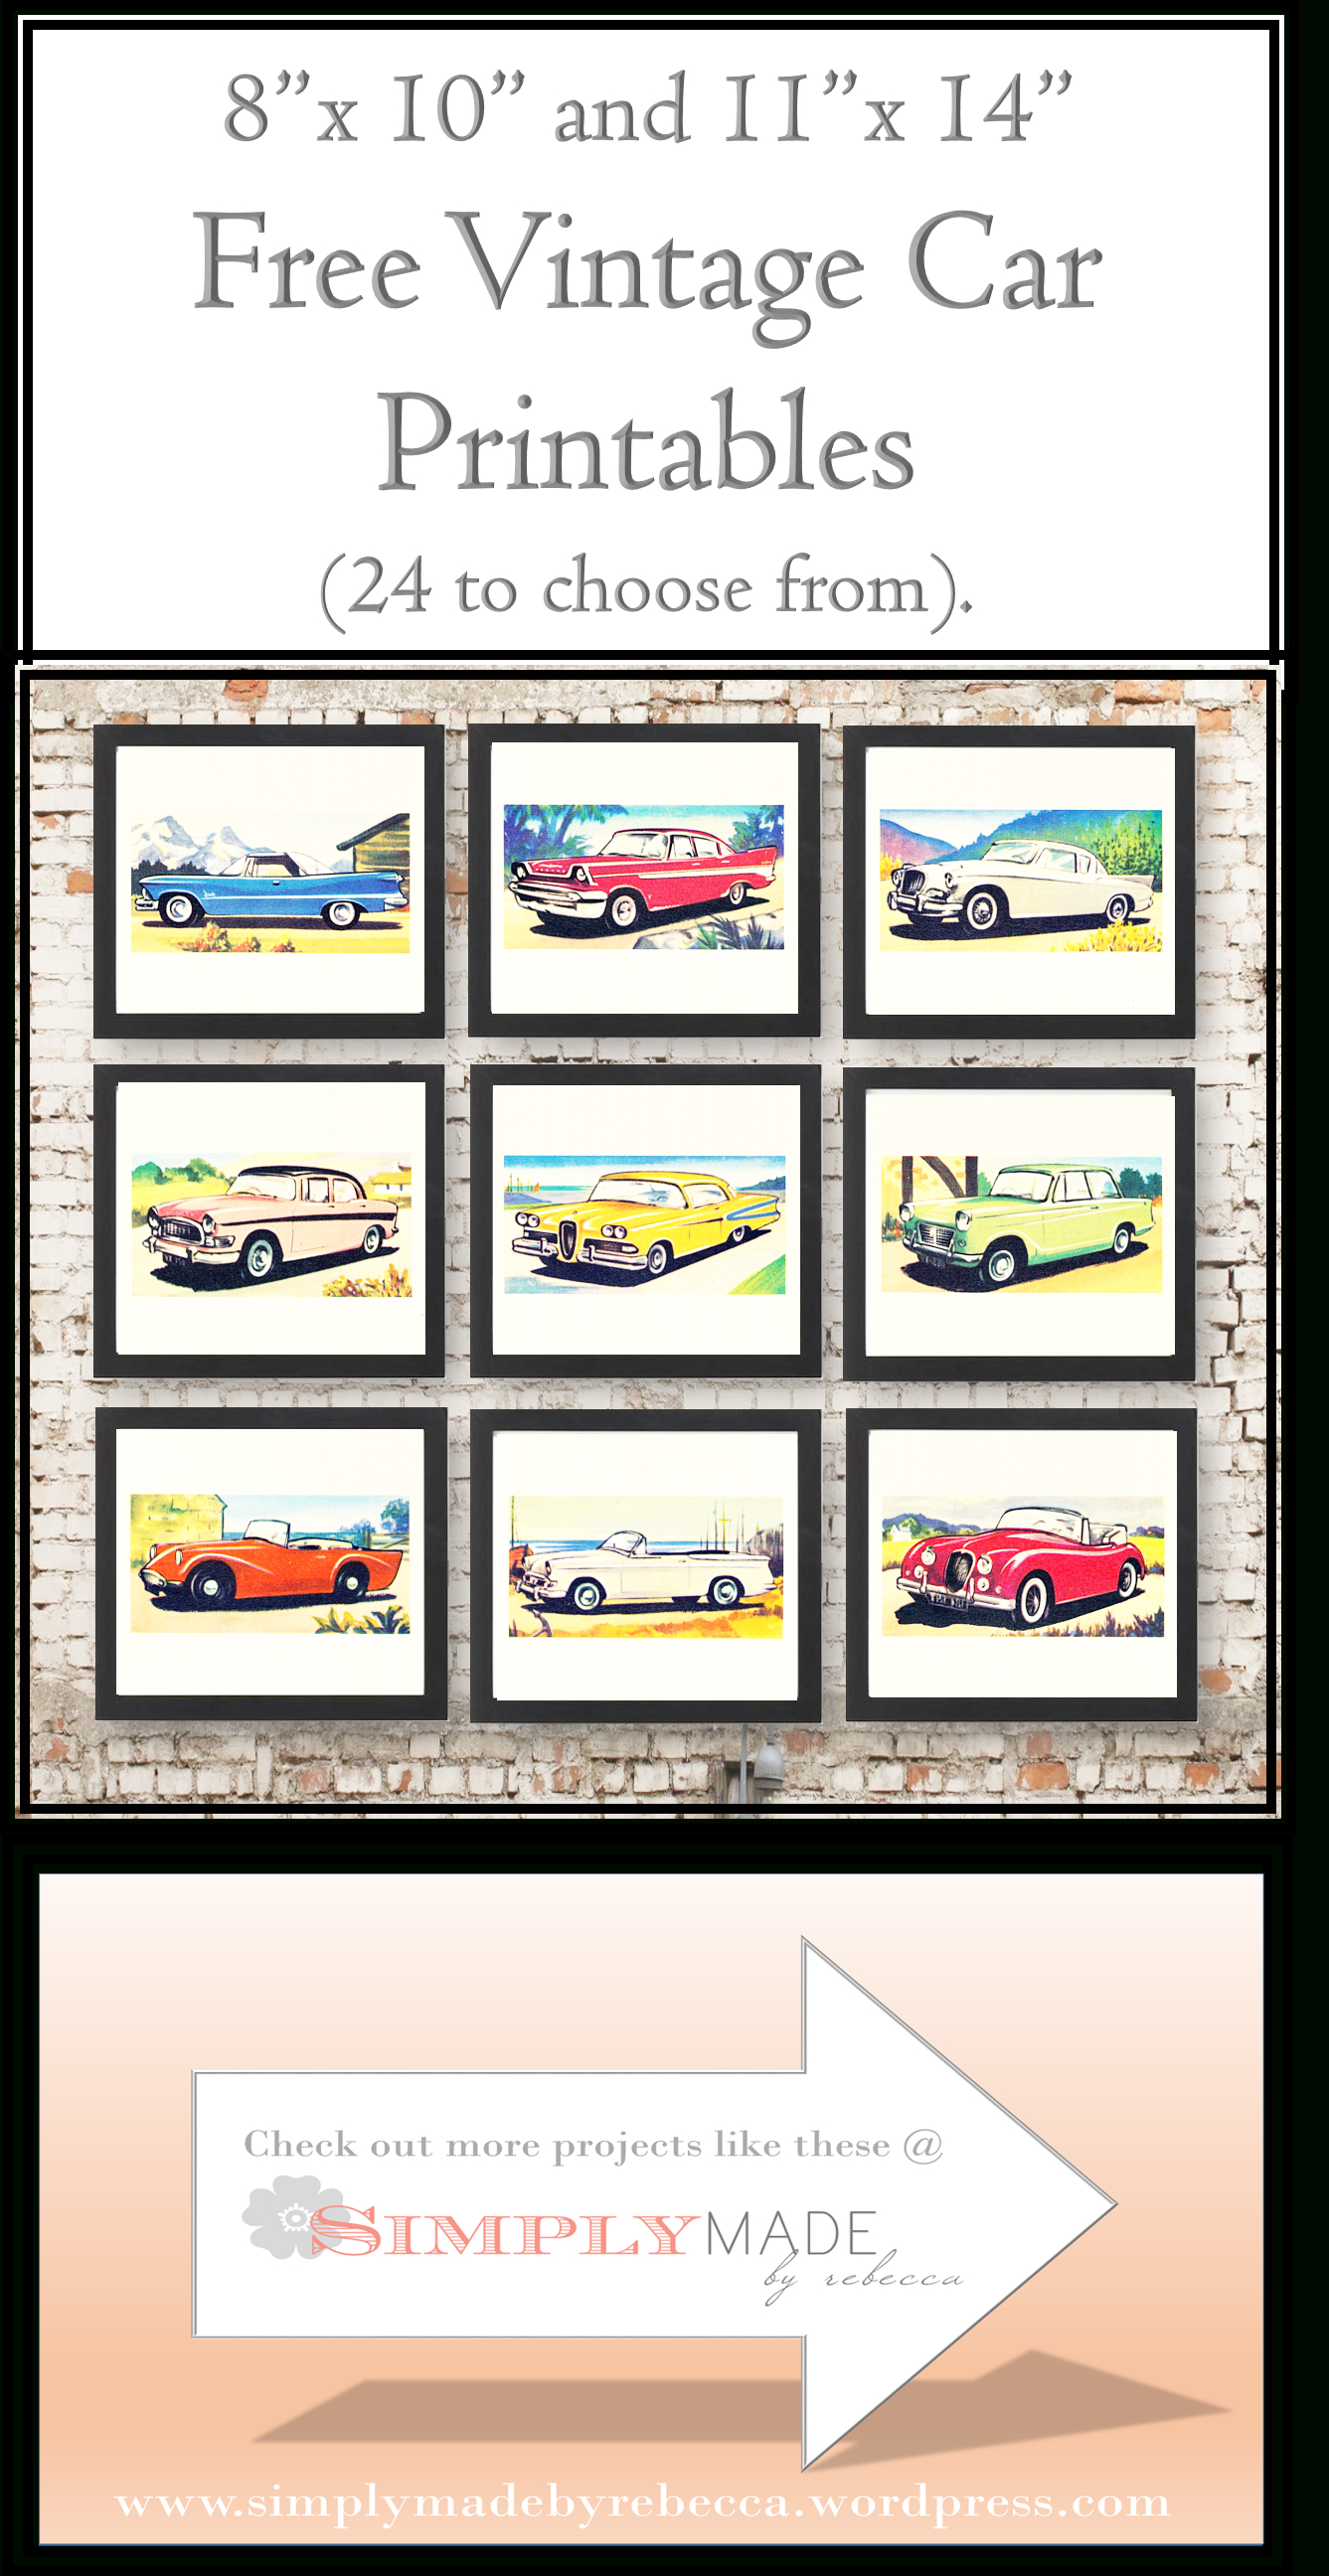 Free Vintage Car Printables | Cards - Downloadable Resources - Free Printable Nursery Resources